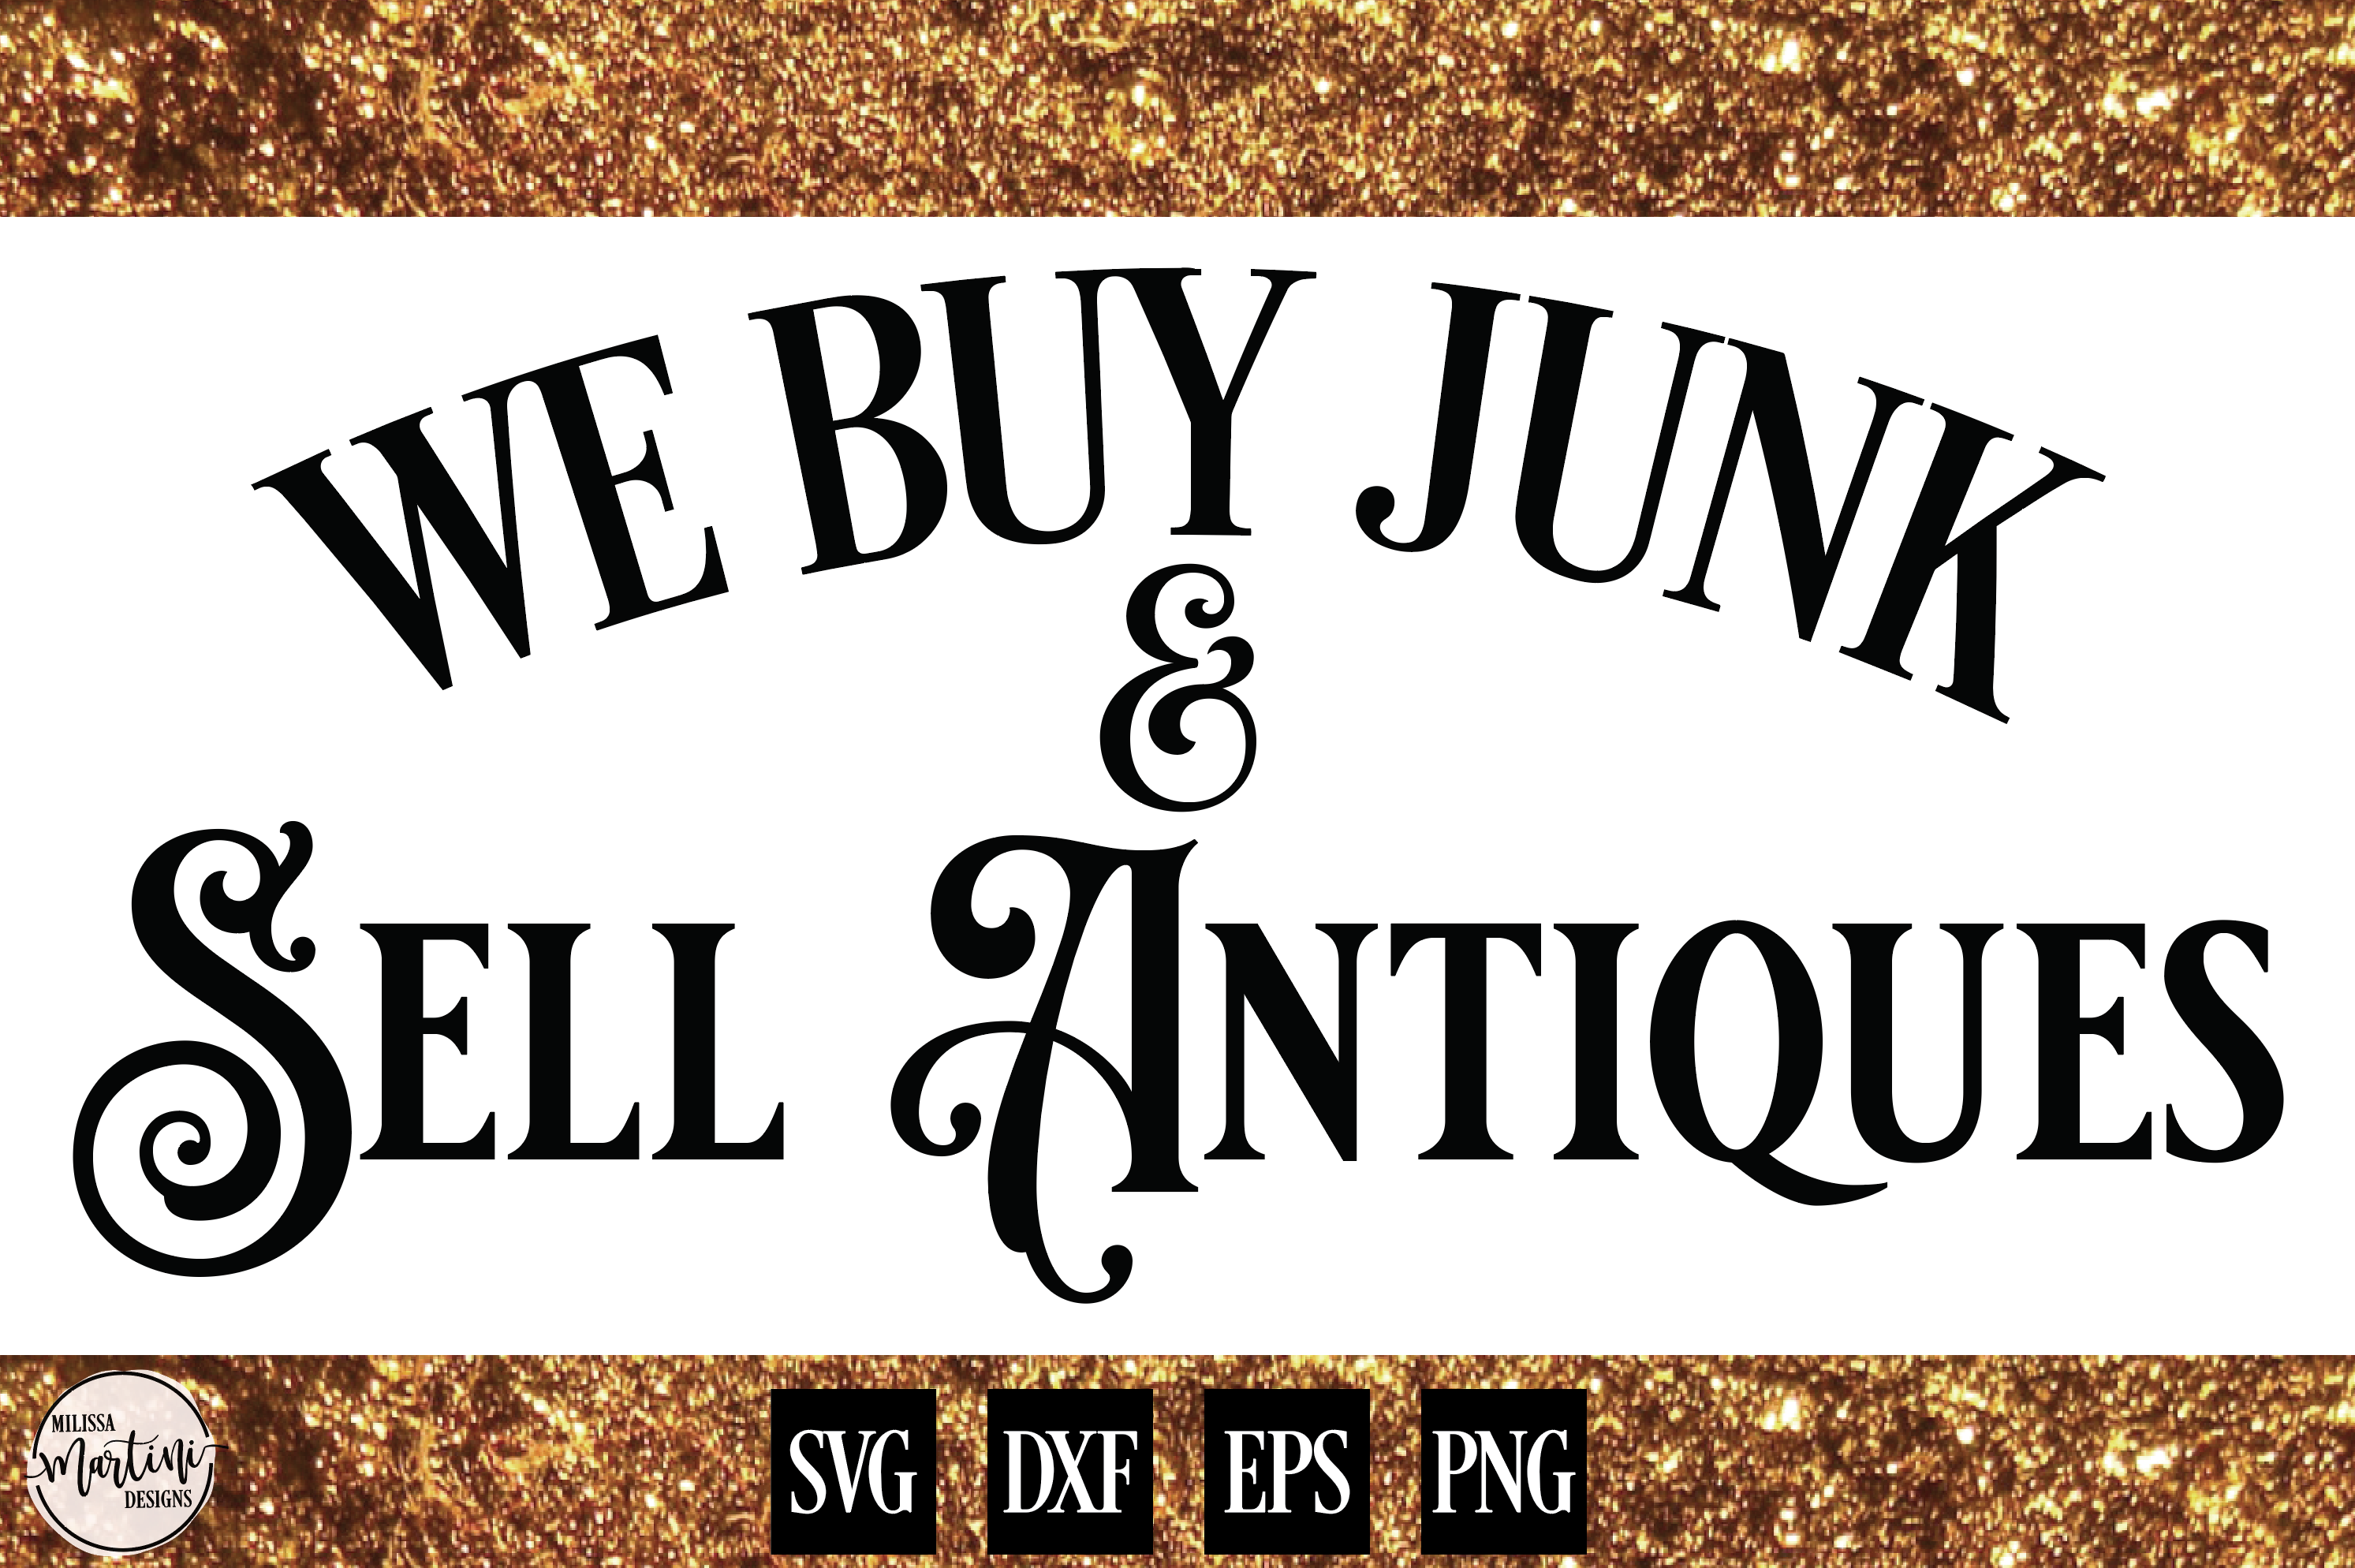 We Buy Junk & Sell Antiques example image 1